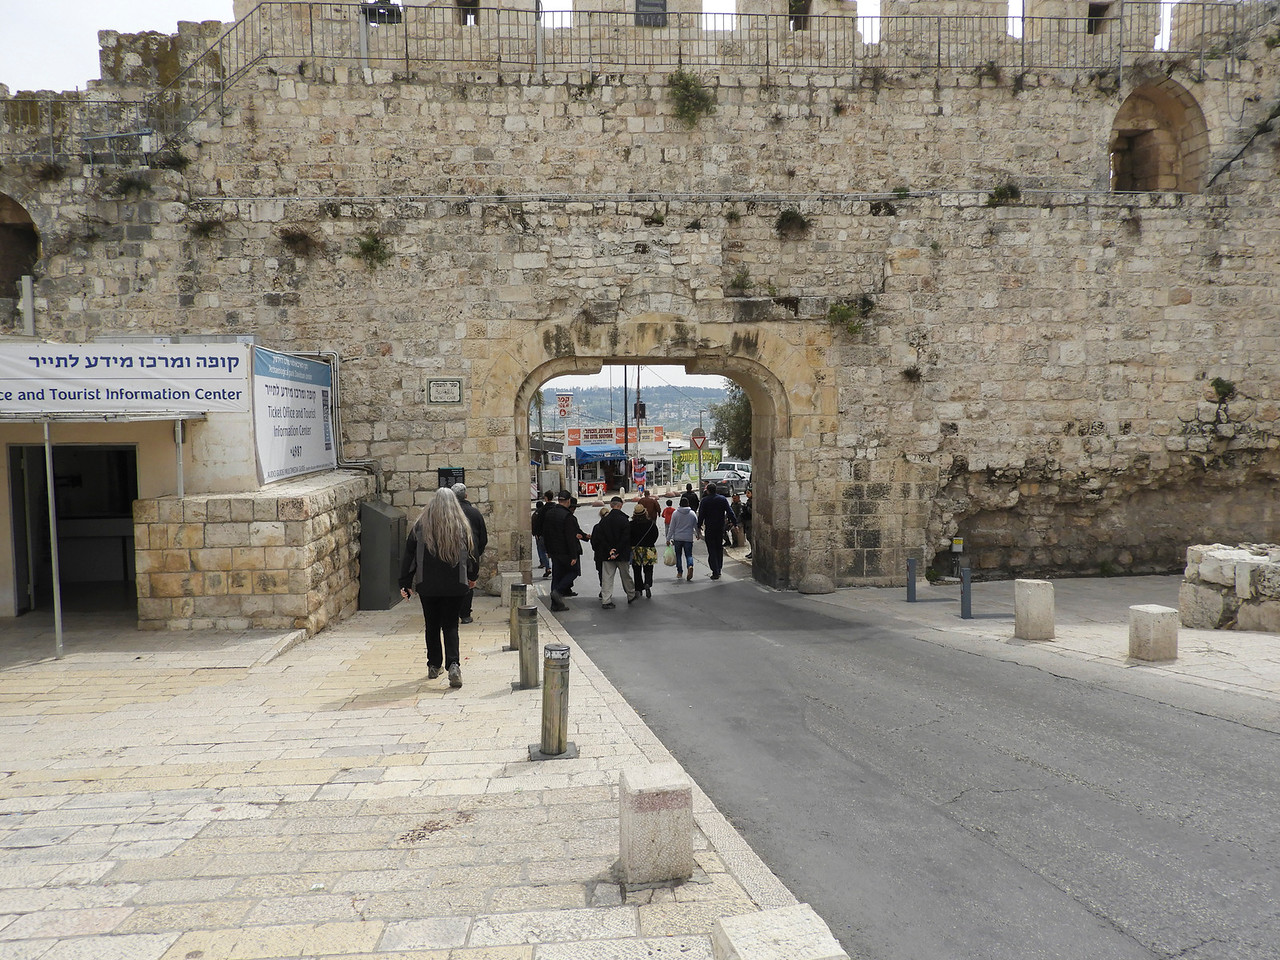 Gate, Wall of Jerusalem